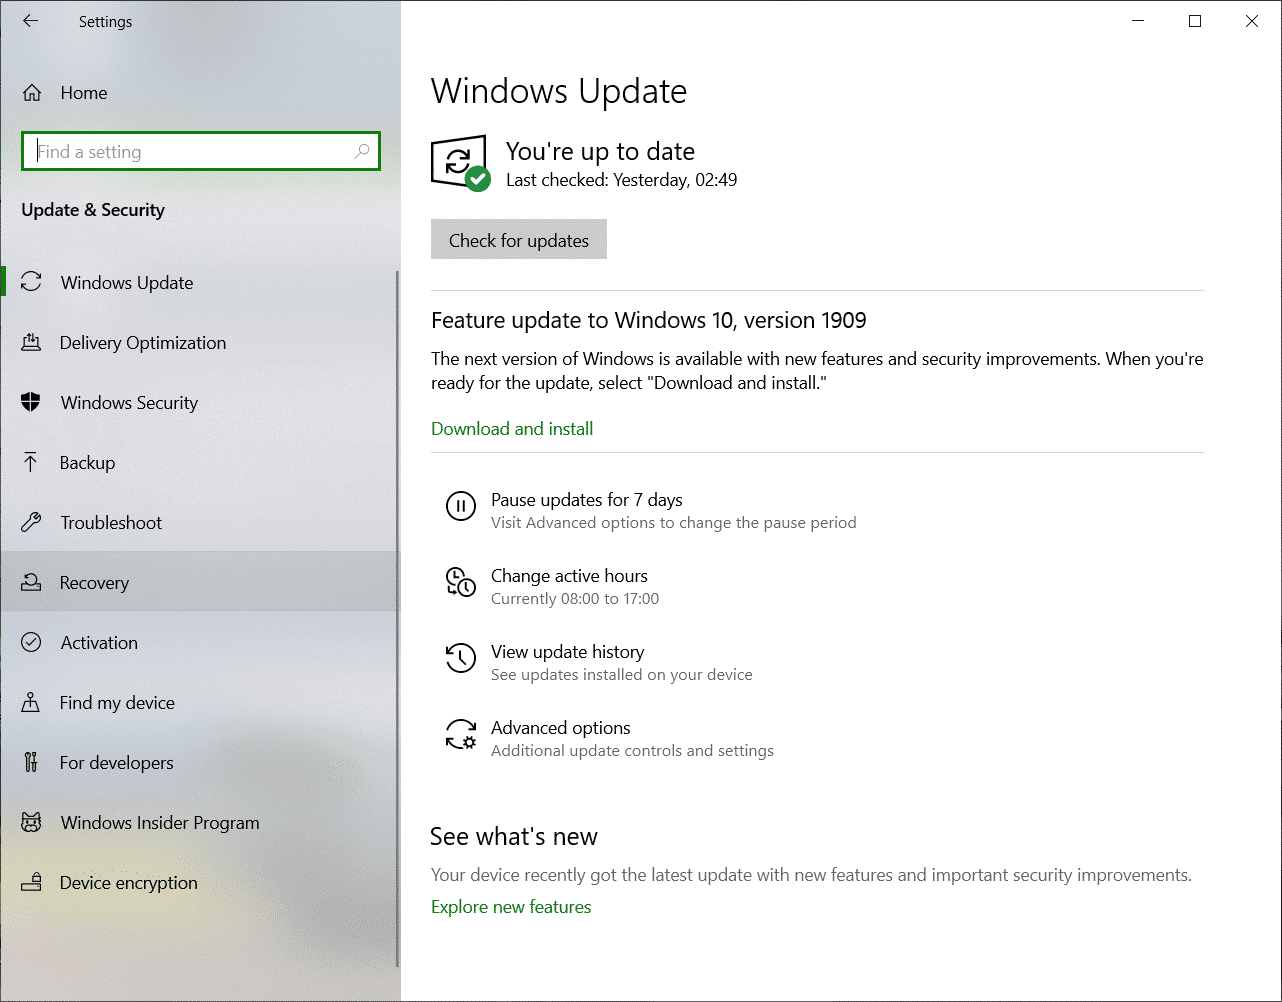 How to Rollback or Downgrade a Windows 10 Update